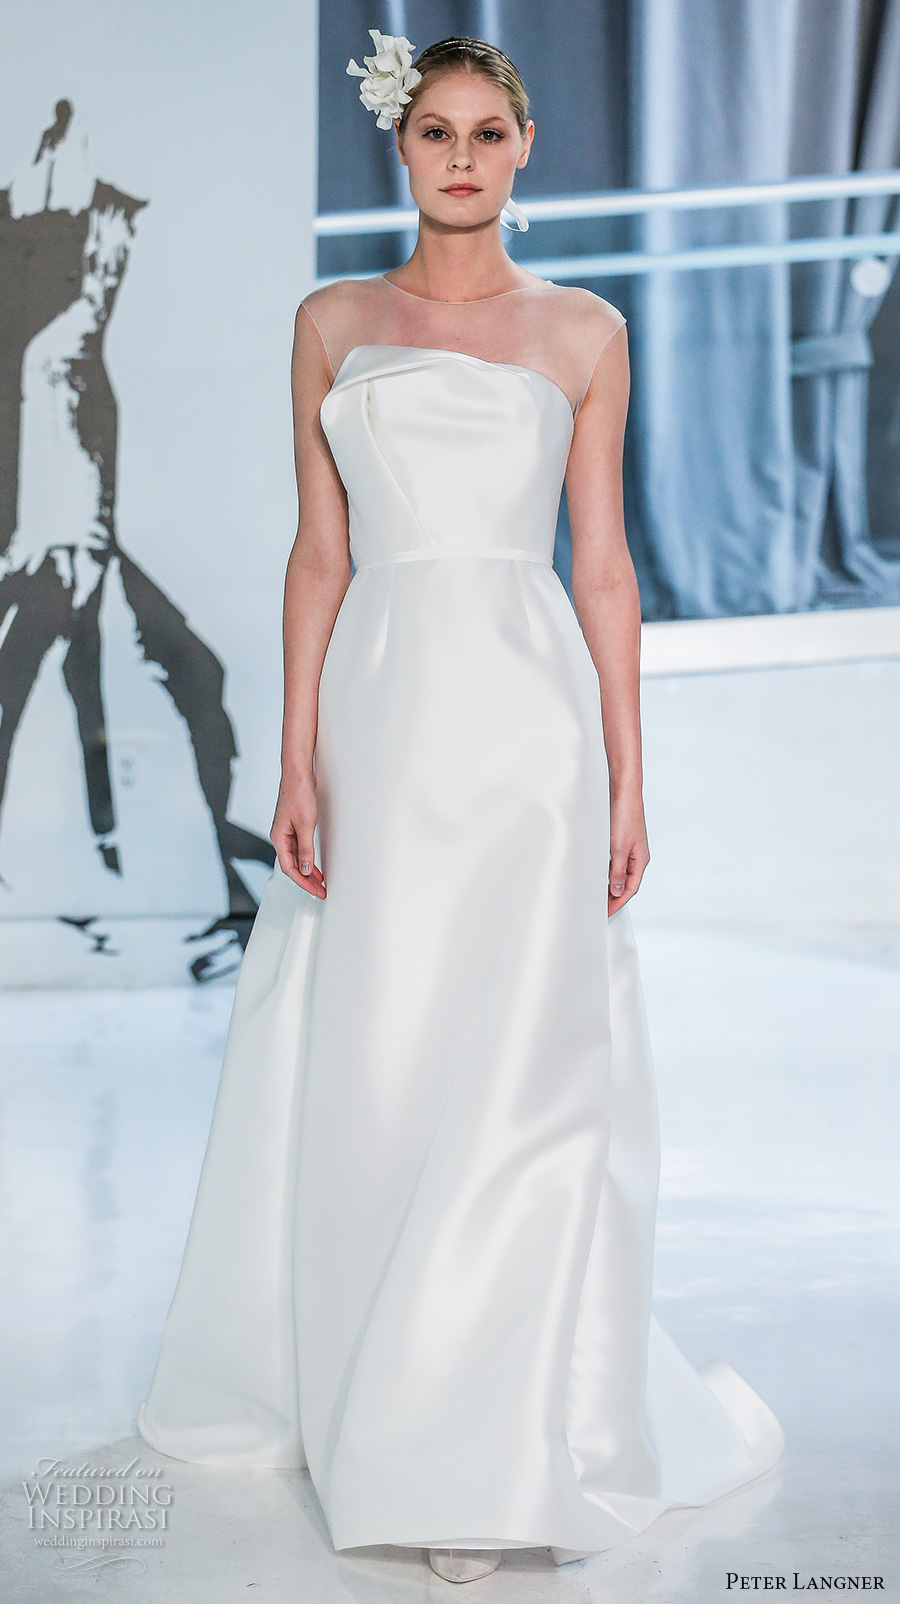 peter langner spring 2018 bridal sleeveless illusion jewel straight across neckline simple clean satin elegant sheath wedding dress chapel train (03) mv